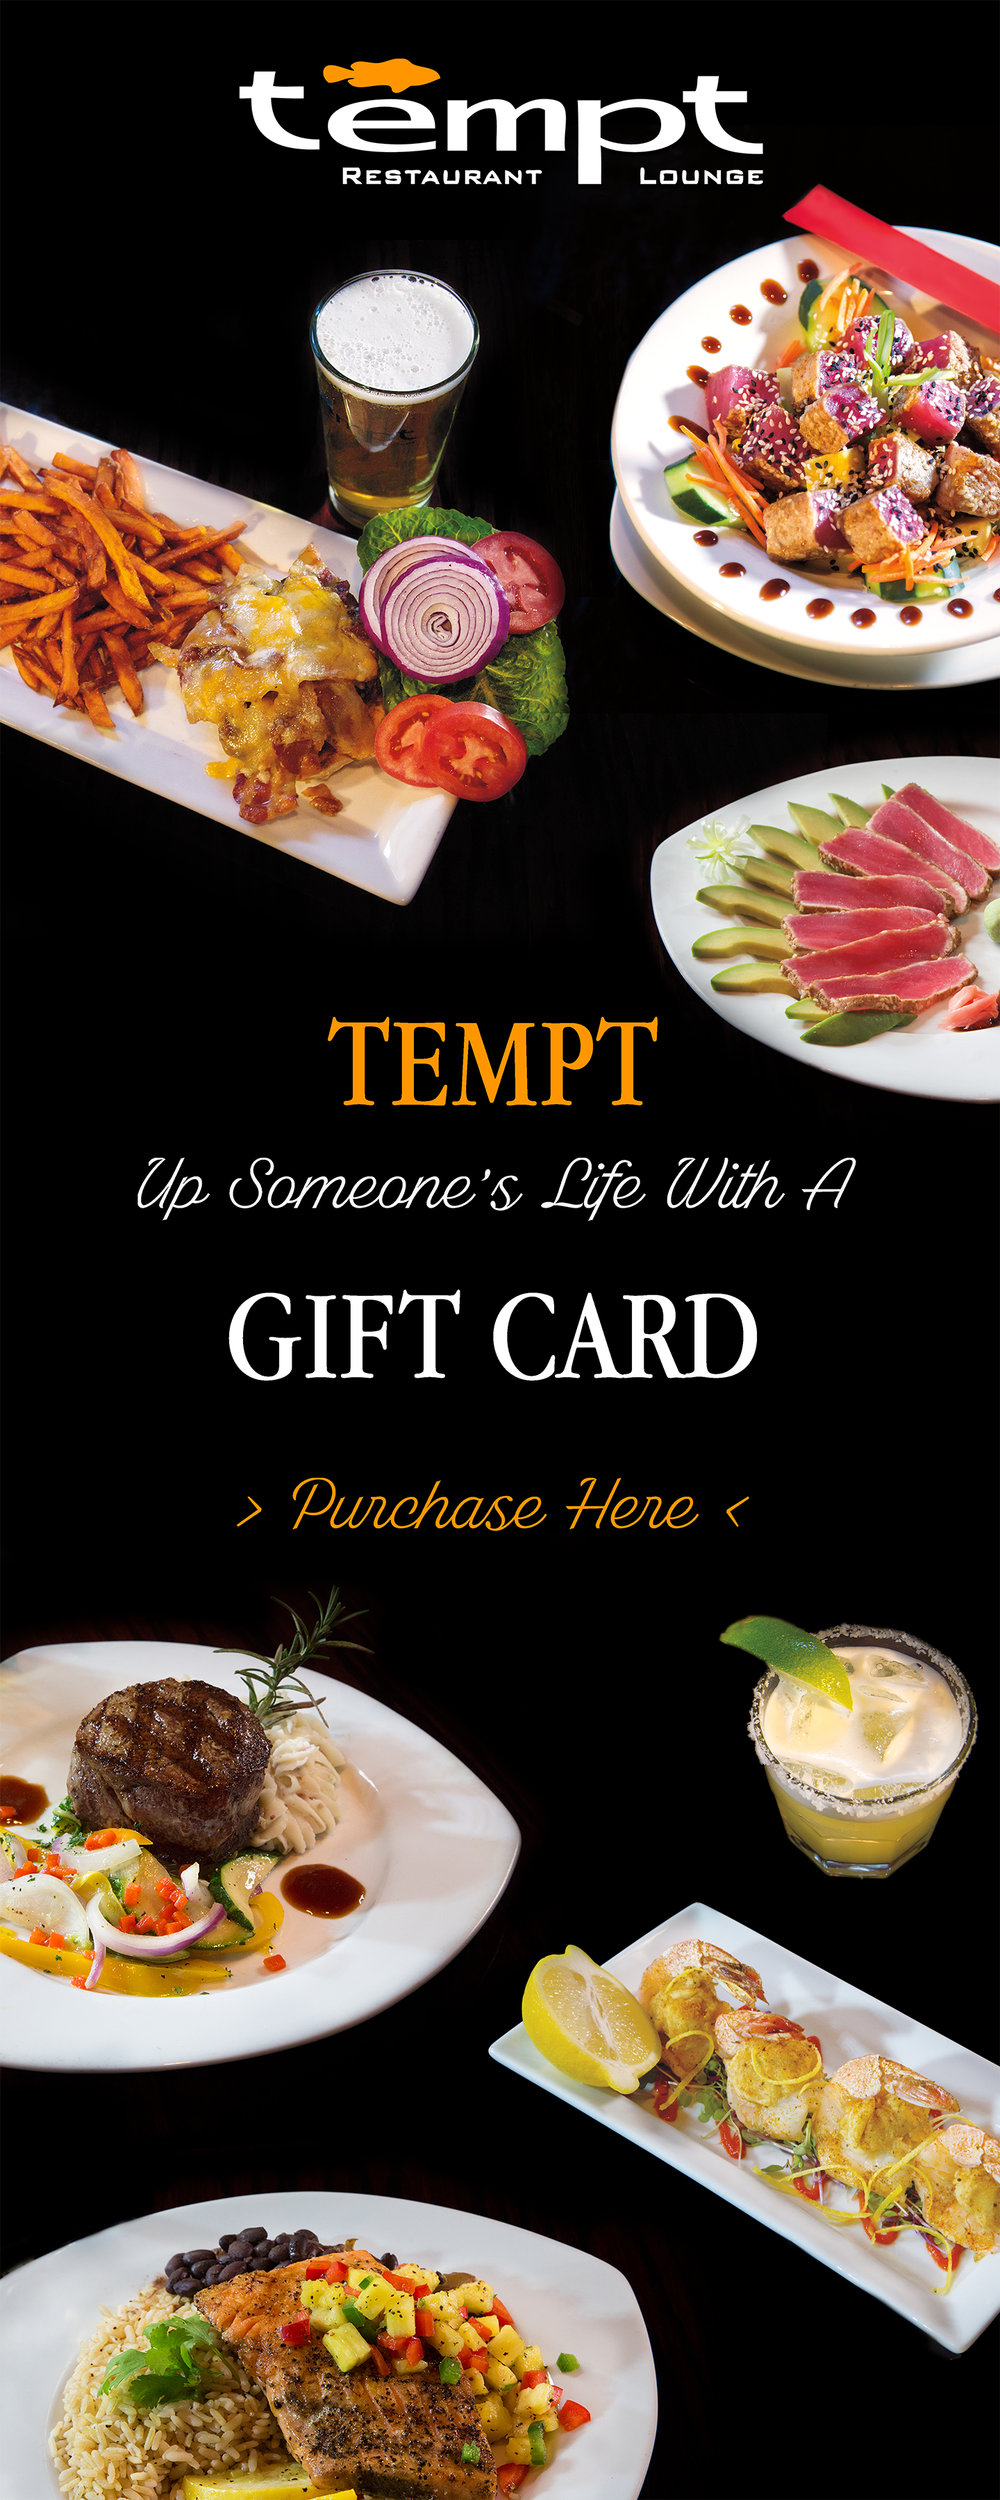 Tempt Gift Cardwebsite.jpg